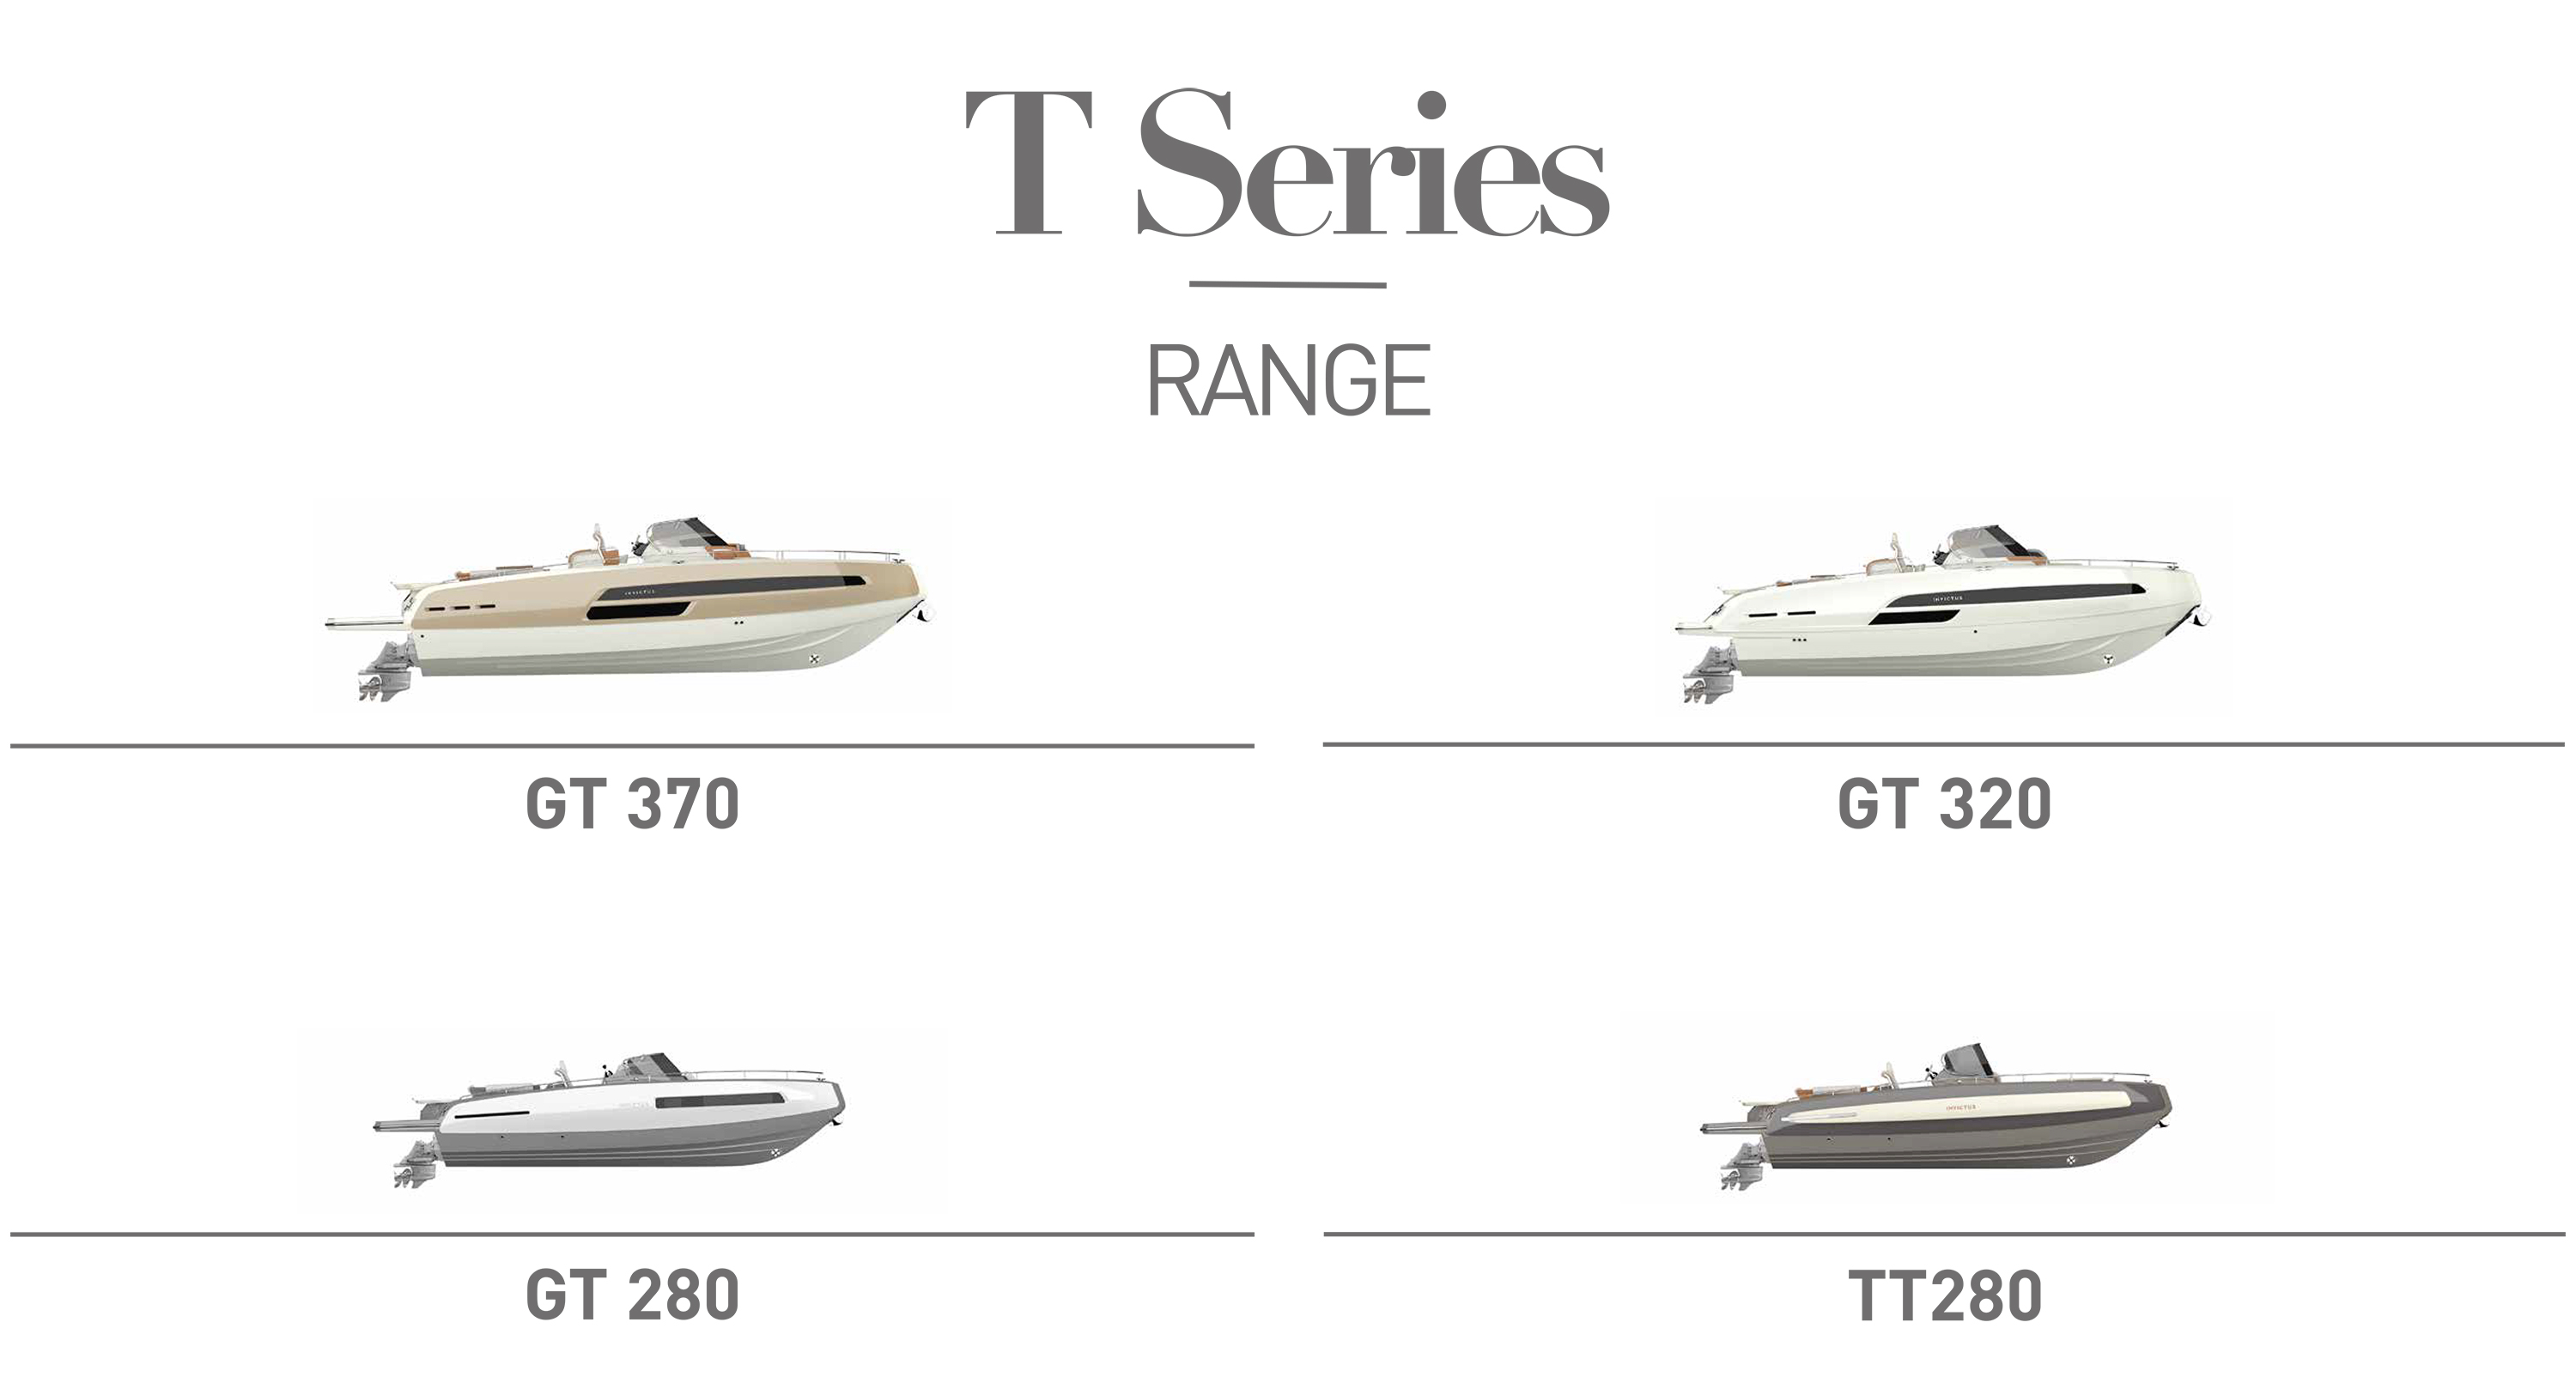 2019 T Series Line Up